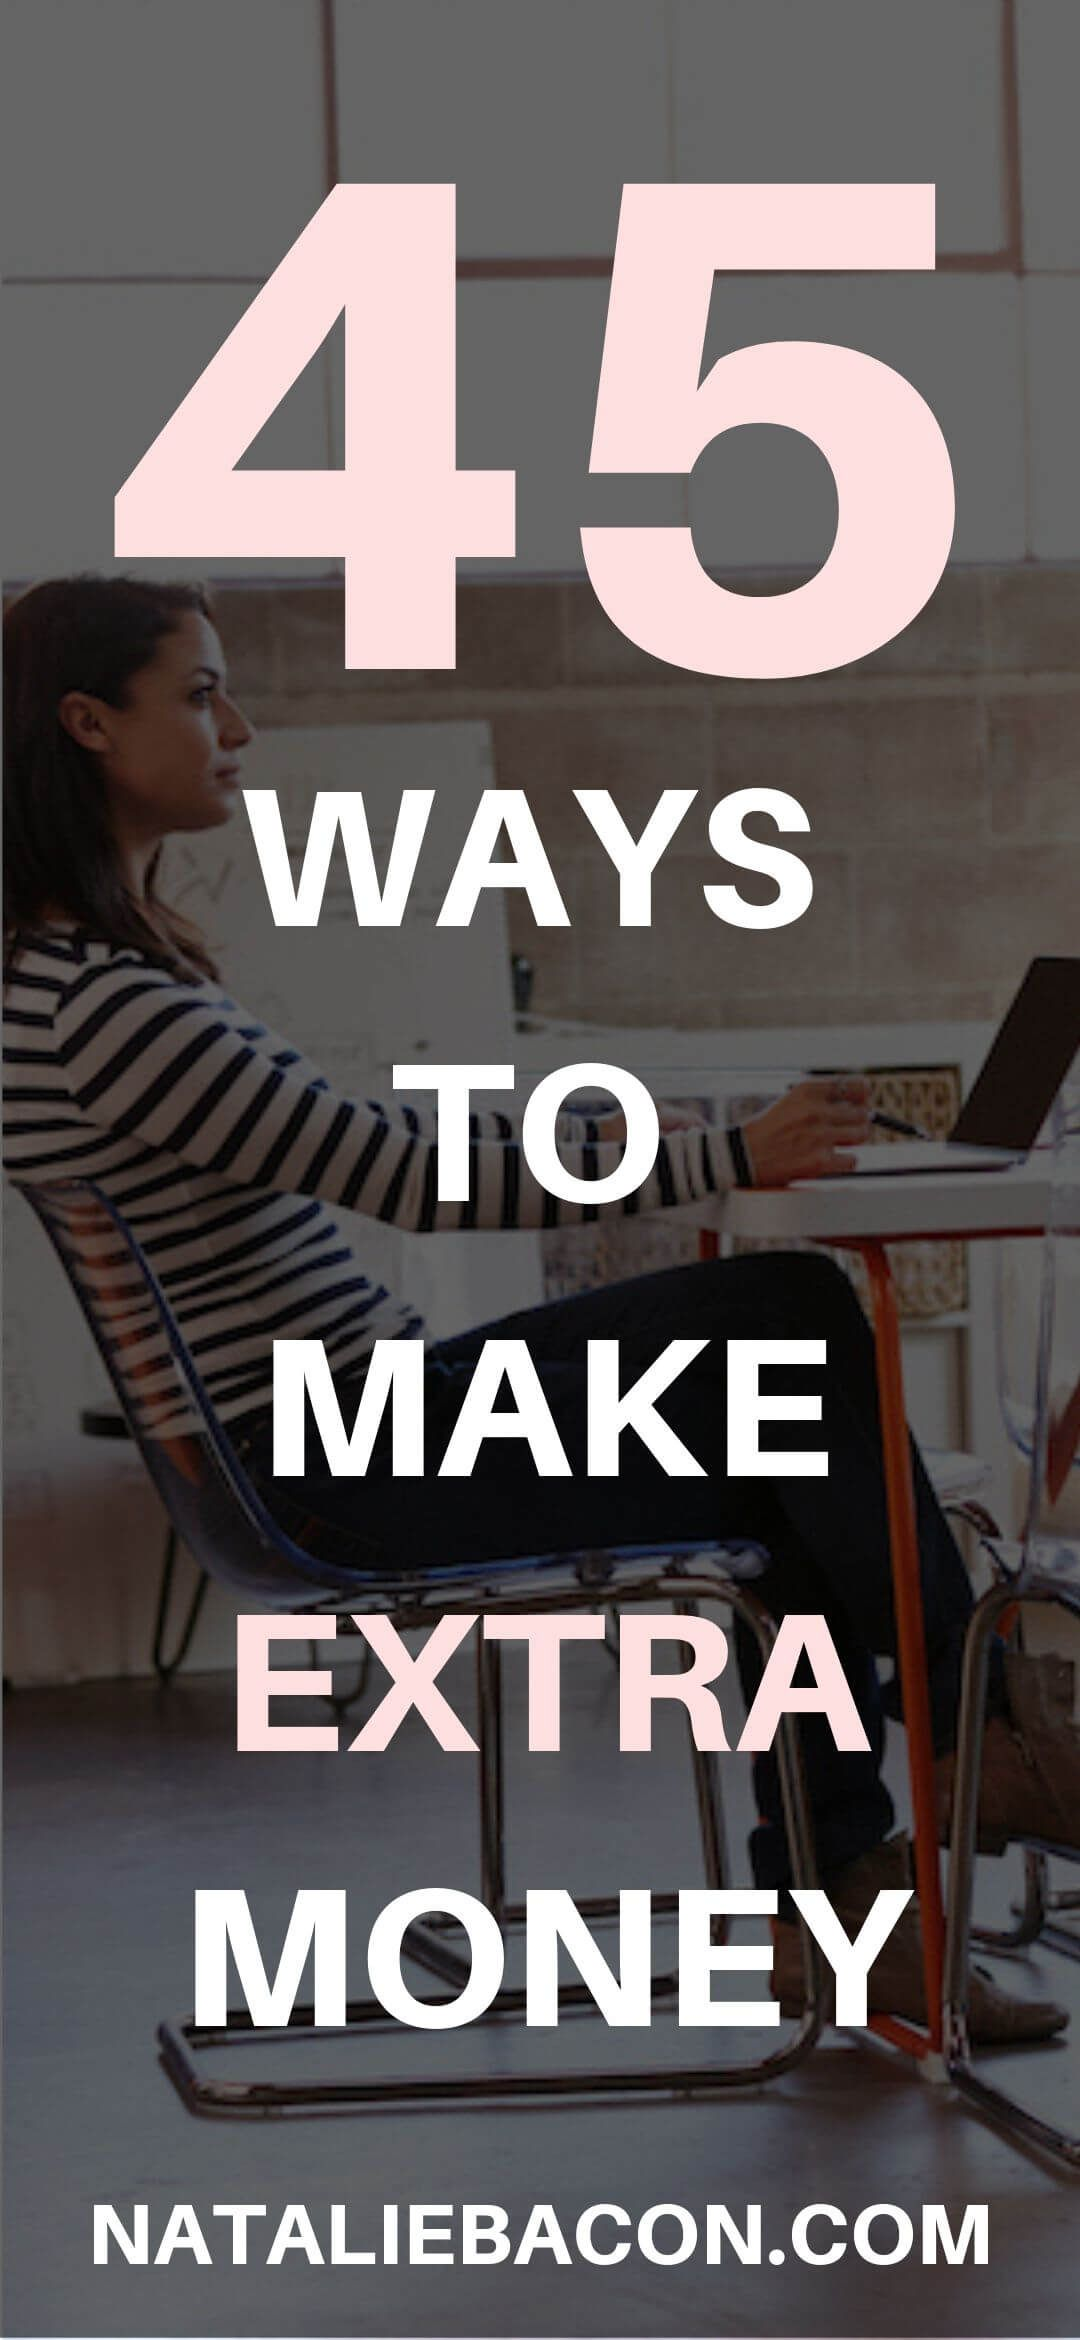 Ways To Make Extra Money From Home